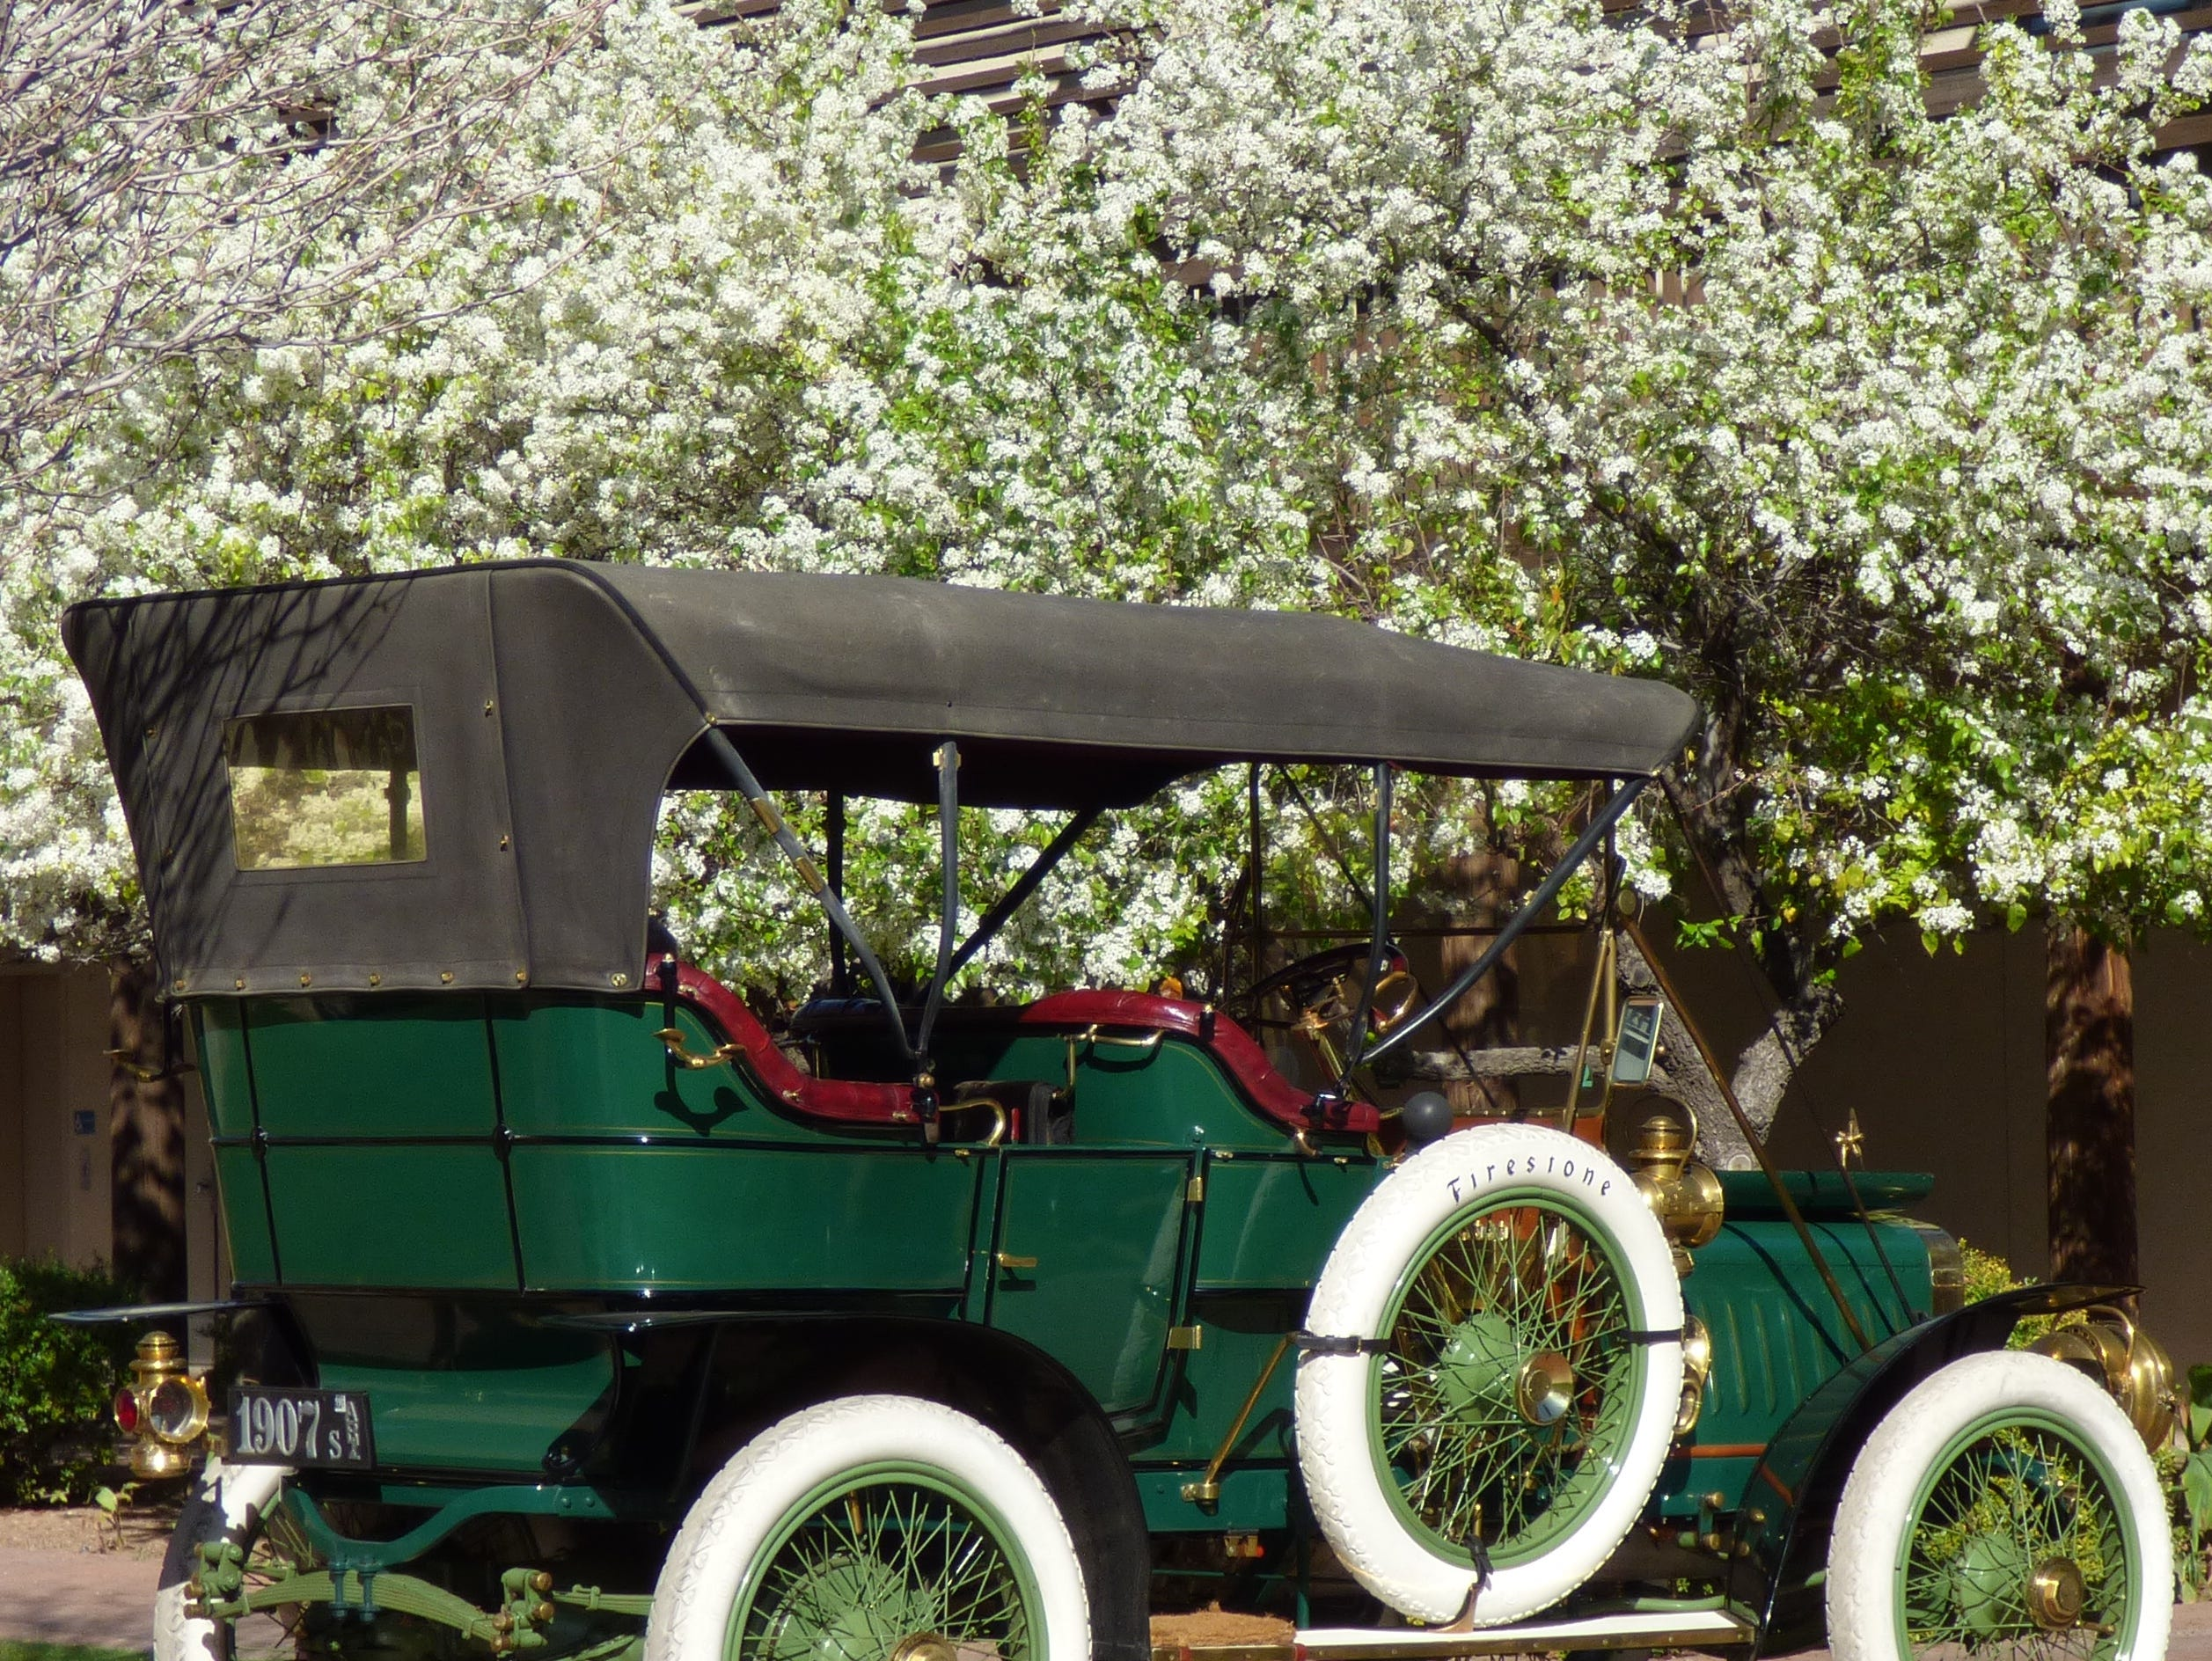 During the Motoring Through Time and Heritage festival, car owners will display vehicles from different eras.